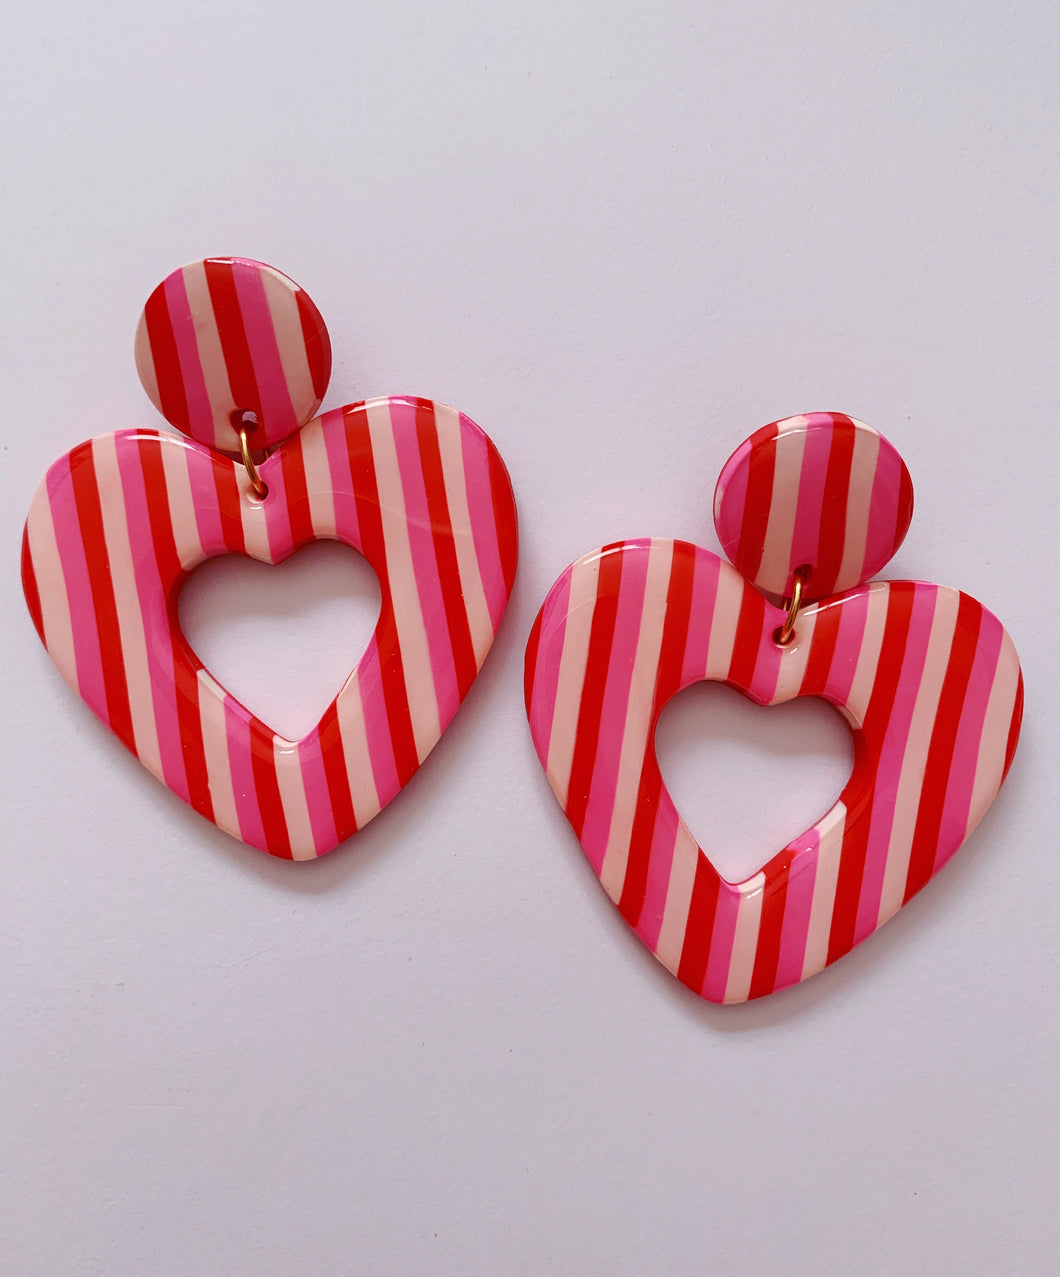 XL Red, Pink and White Striped Heart Hoops